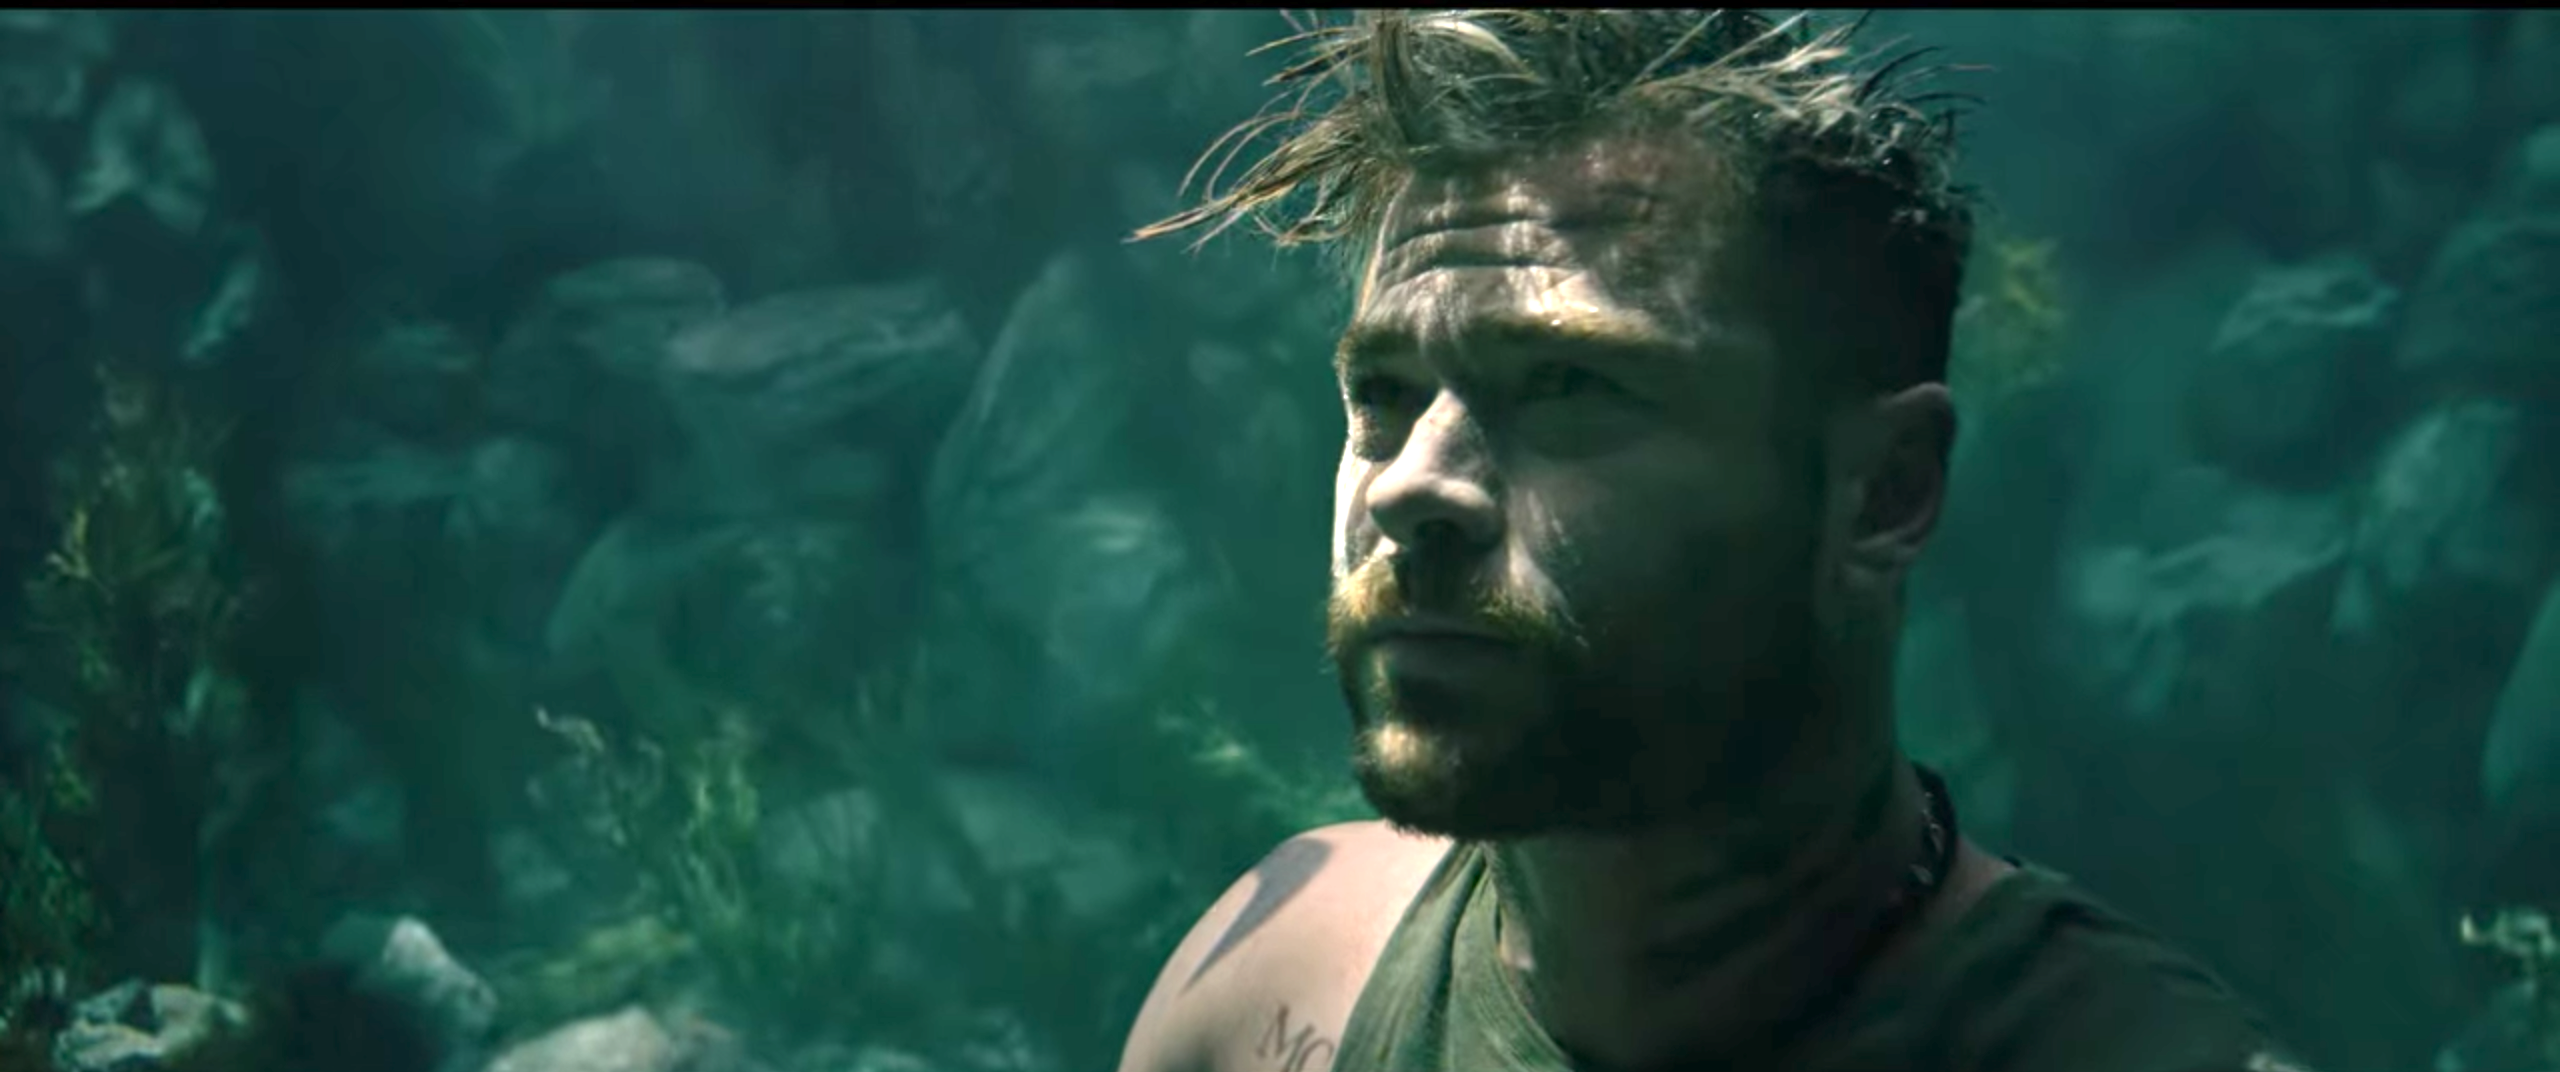 For Extraction Chris Hemsworth Held His Breath For 3 Minutes